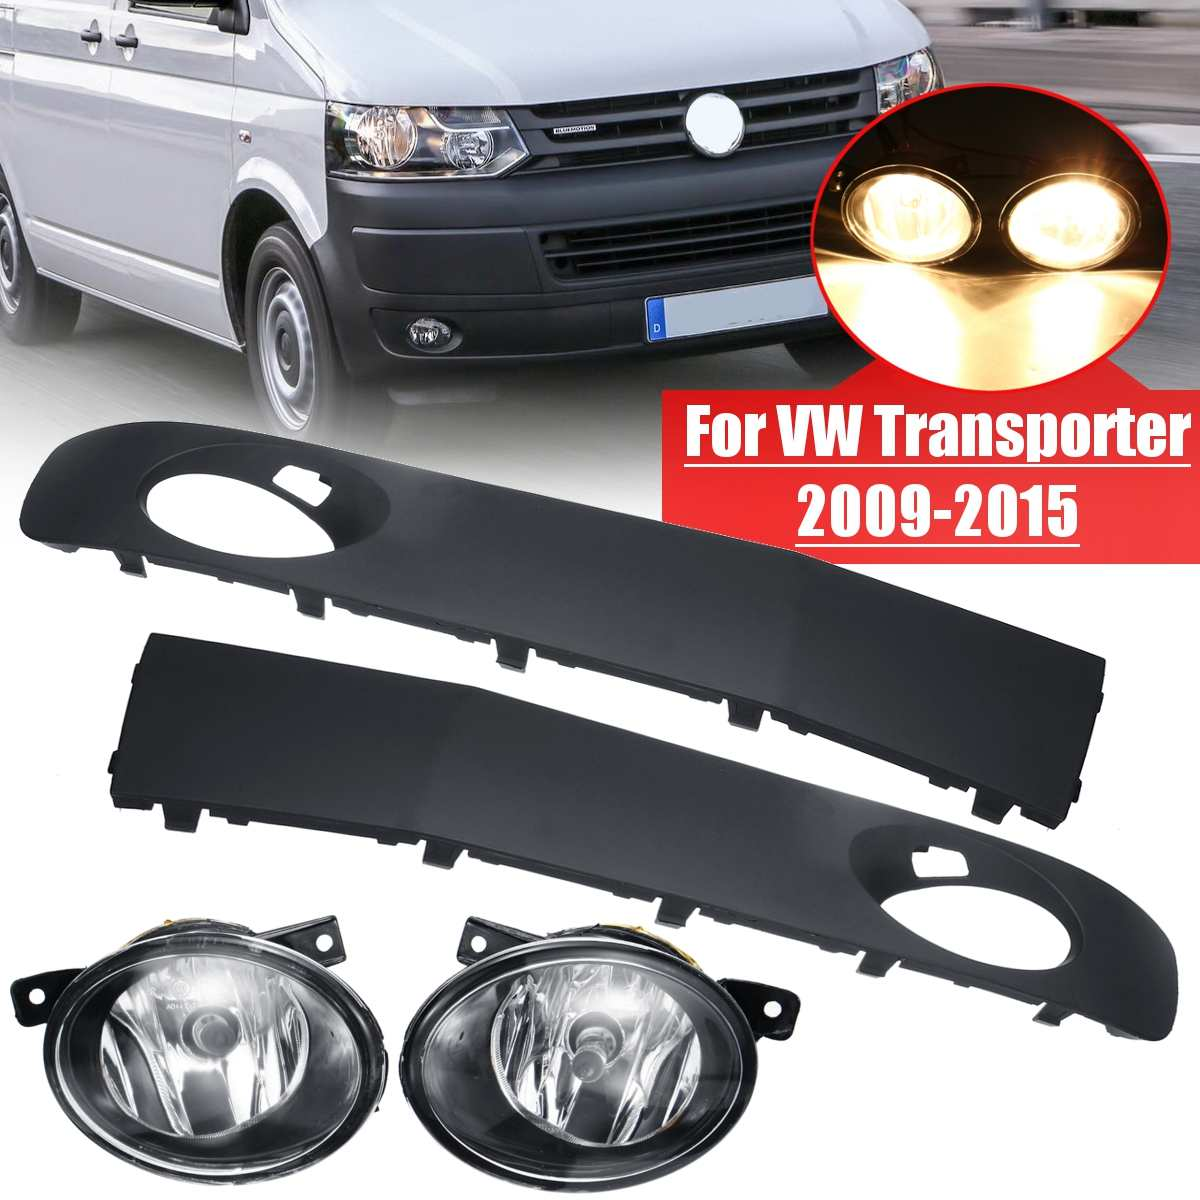 Pair Front Bumper Fog Light Lamp With Grilles For VW Transporter/Caravelle 2009-2015 For VW T5 2003-2010 With Switch+Wiring